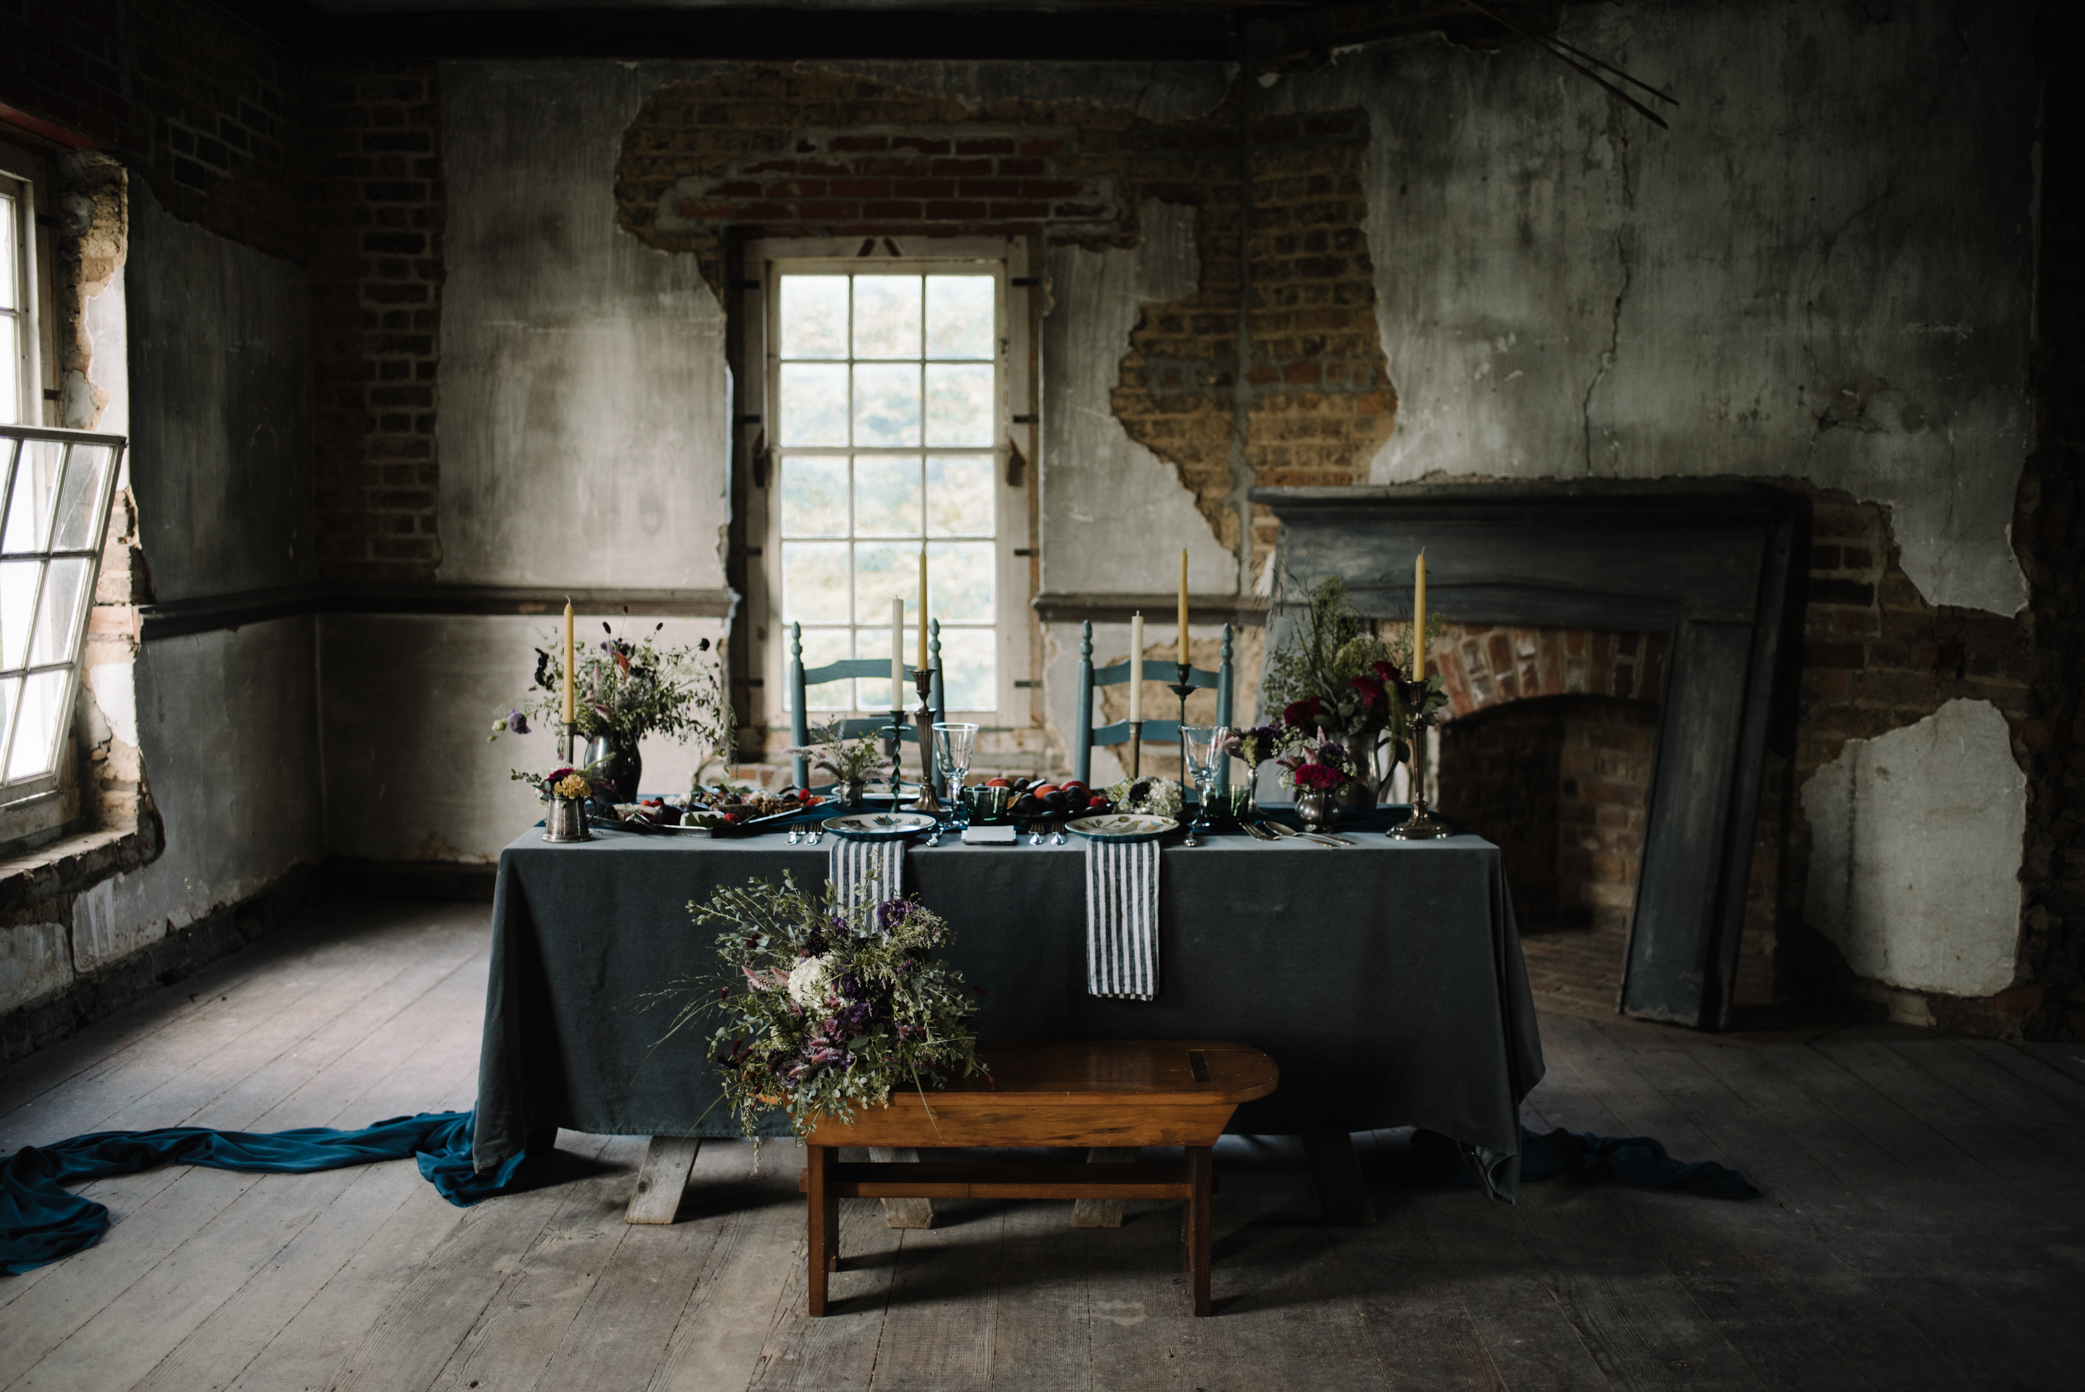 Salubria Historic Manor House Virginia - Moody Scottish Highland Wedding Styled Shoot - White Sails Creative - Sage and Silhouettes - BHLDN - Bijous Sweet Treats_161.JPG